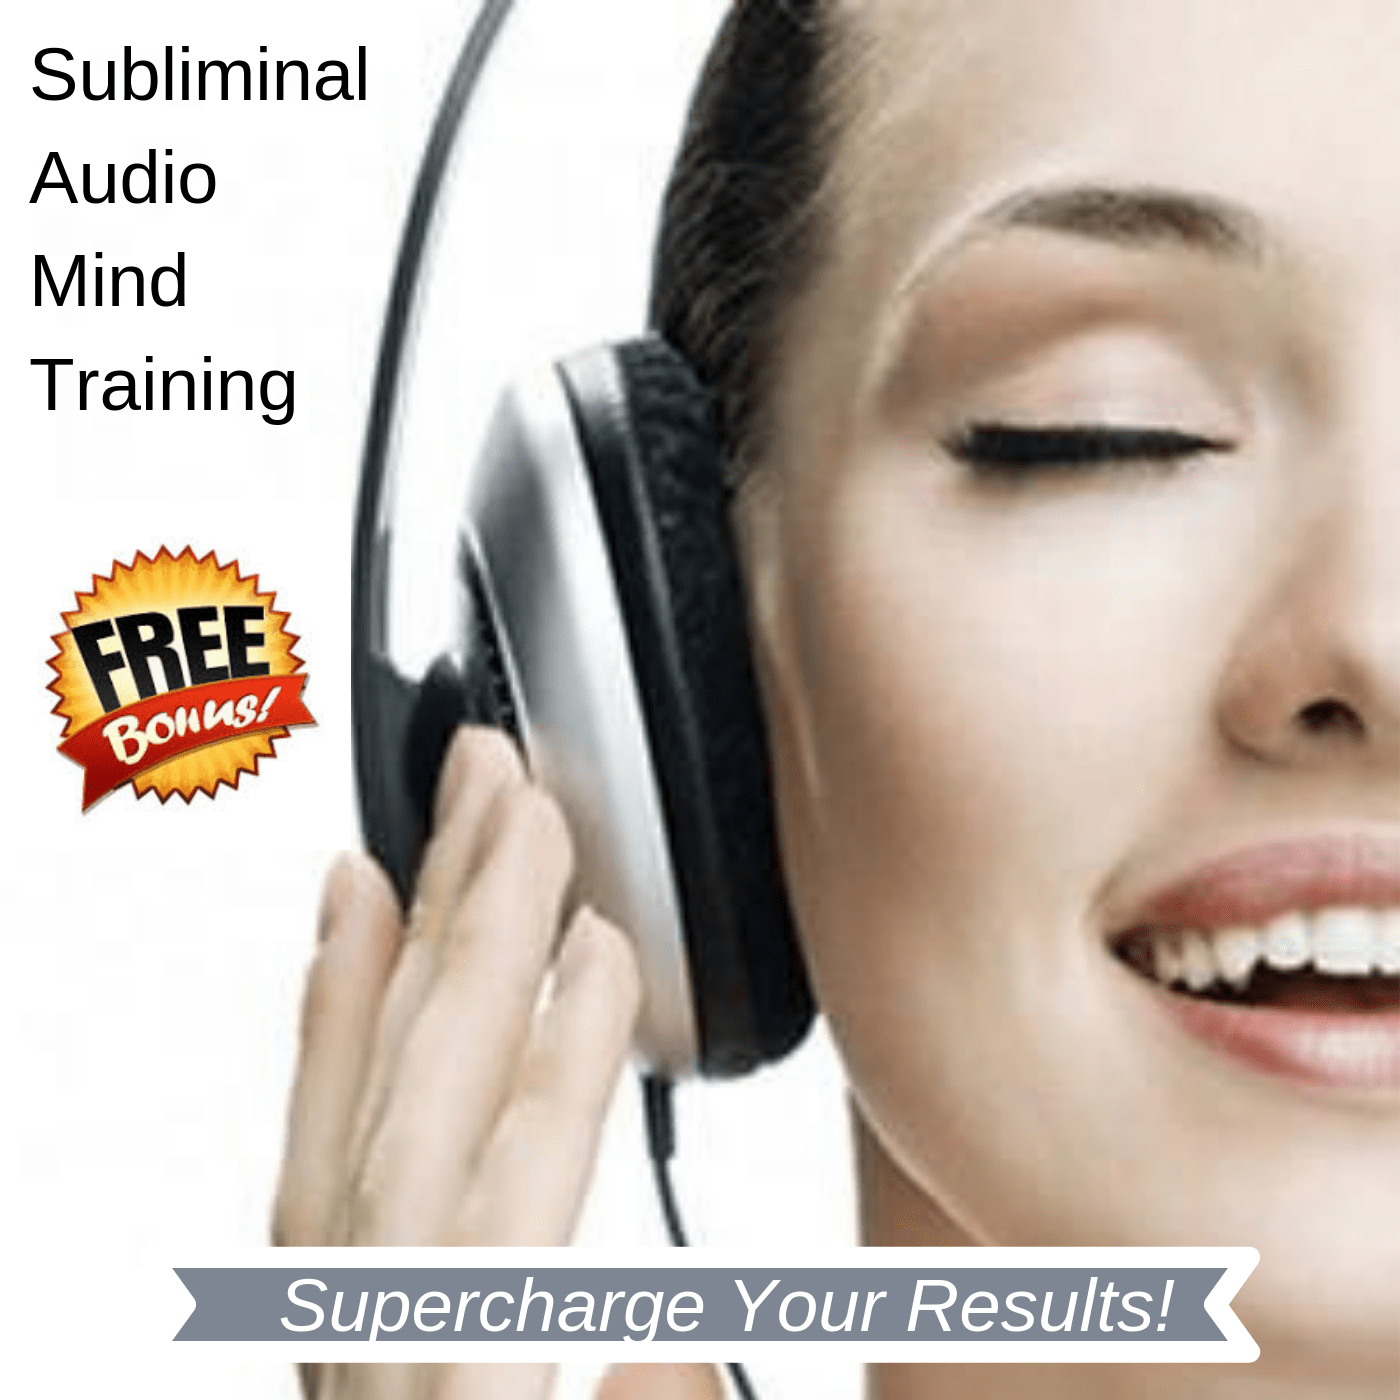 Subliminal Audio Mind Training